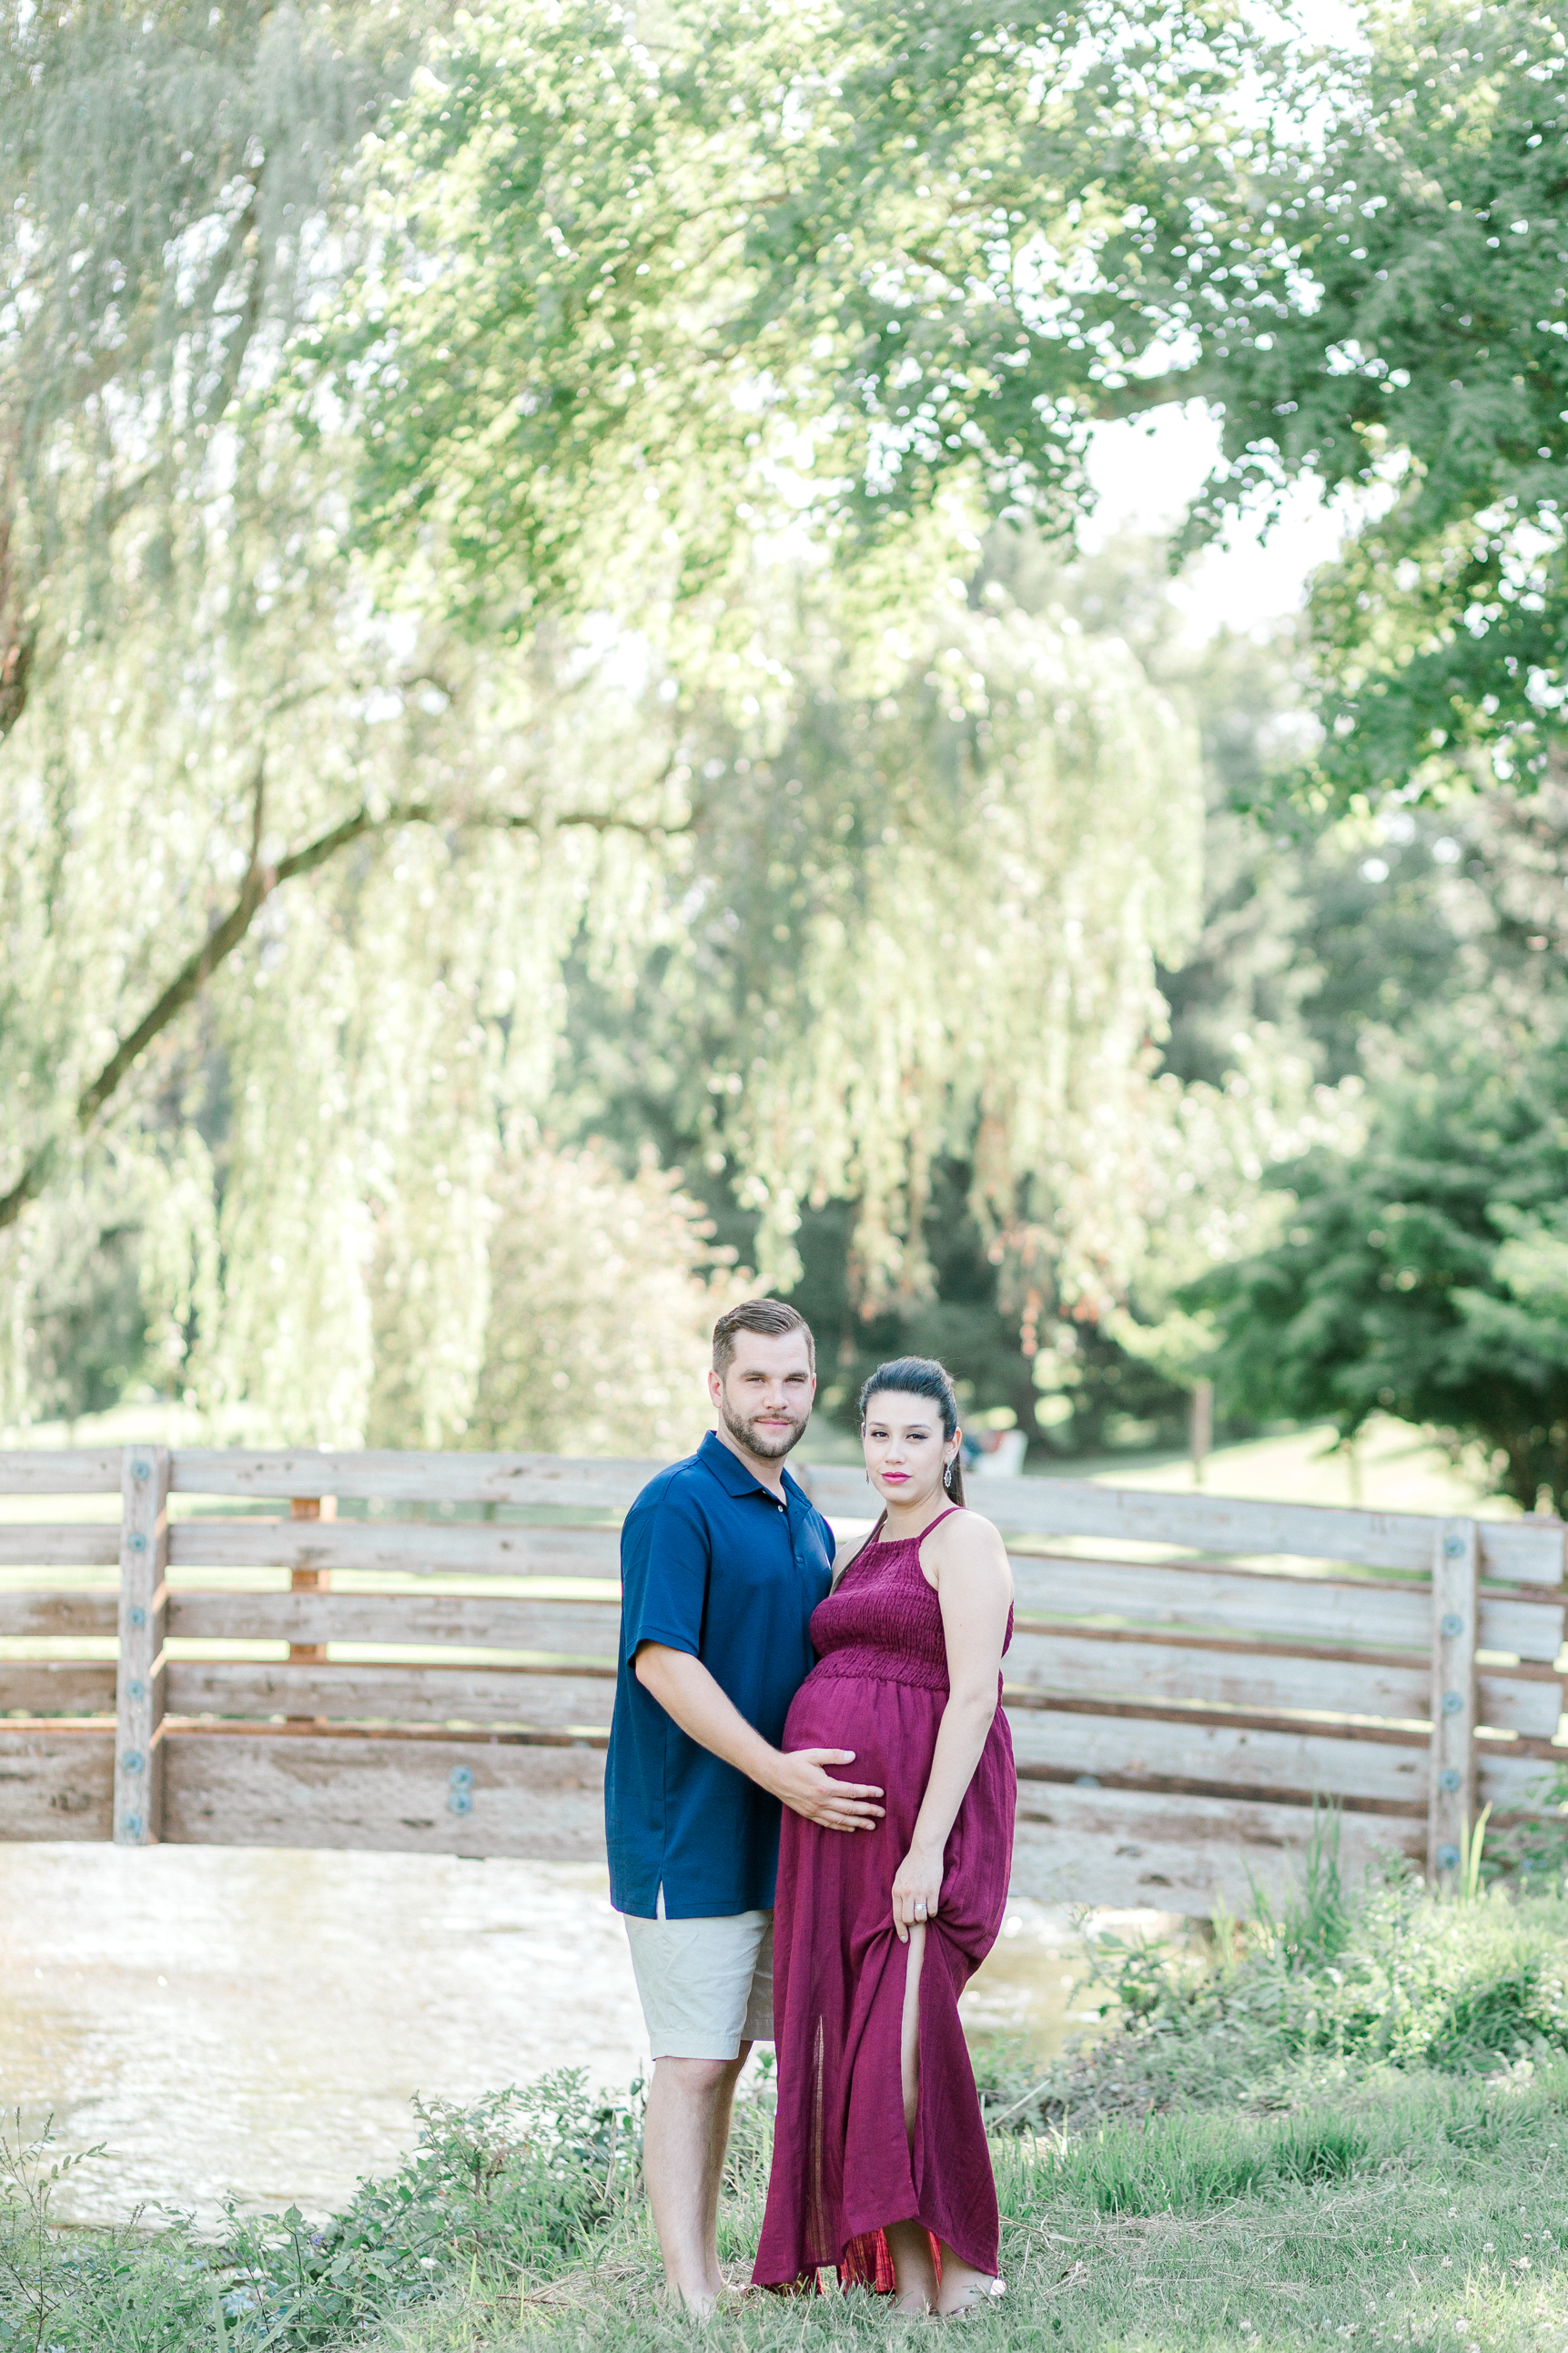 Lehigh Valley Allentown Rose Garden Maternity Photography Session Lytle Photo Co (4 of 66).jpg